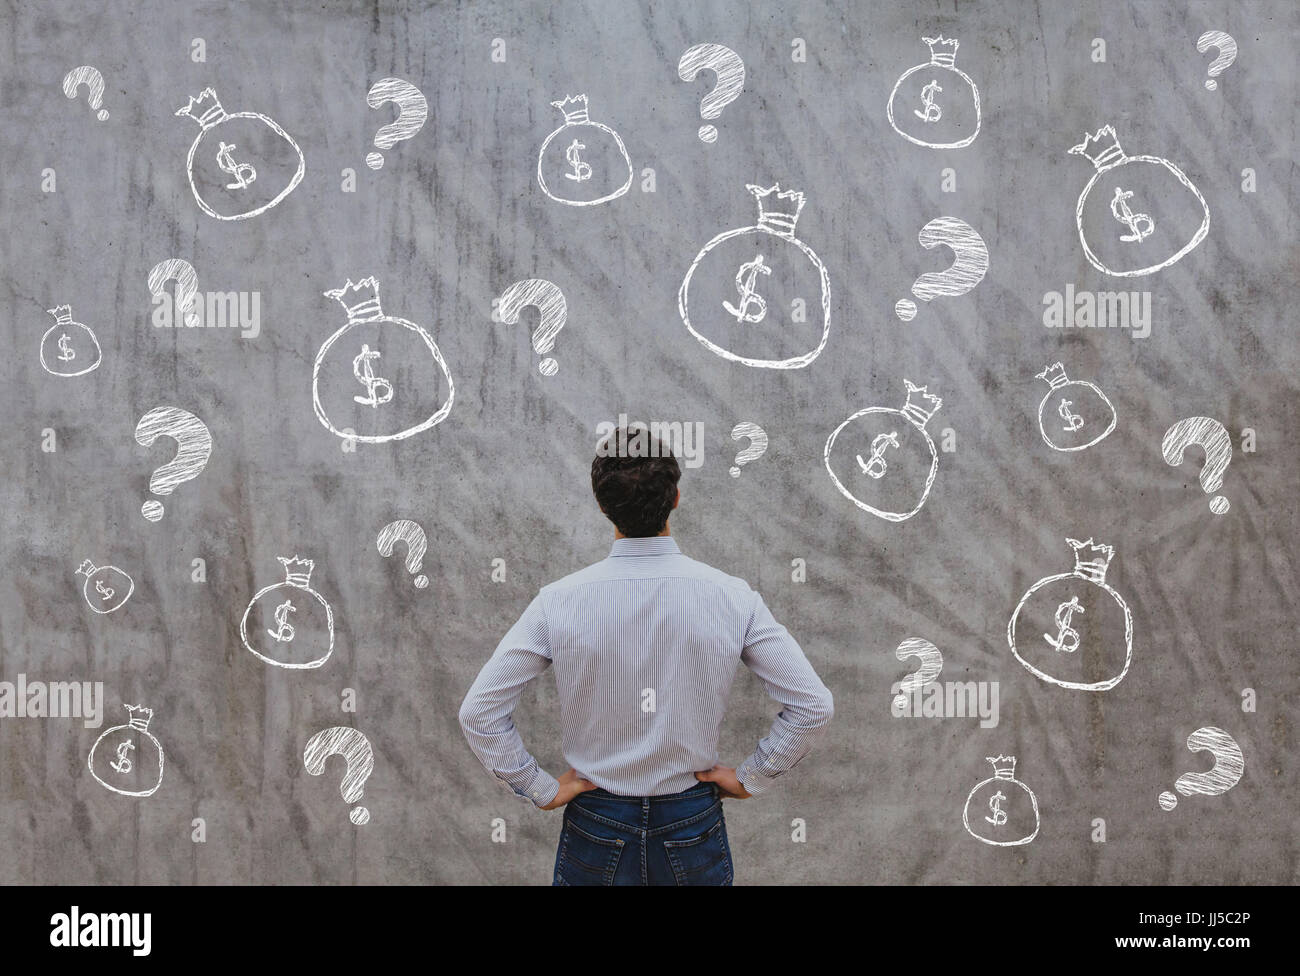 money for startup, business concept - Stock Image